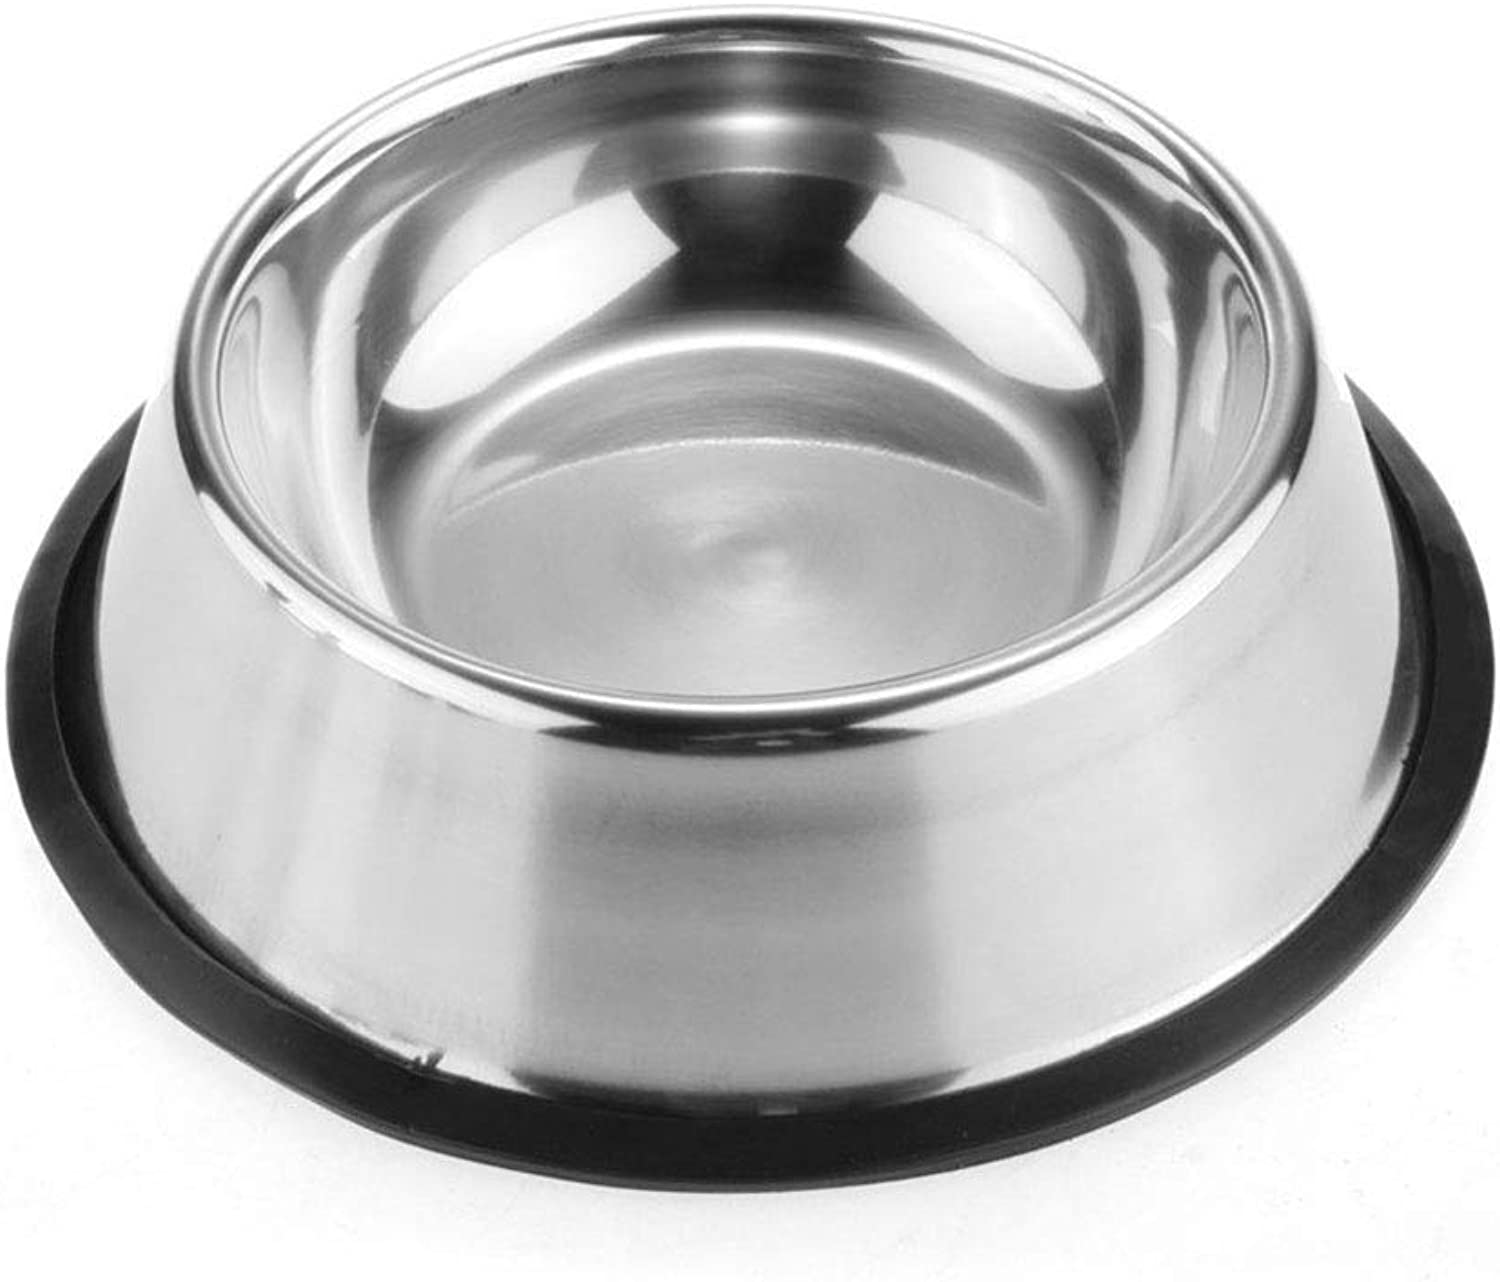 Pet Dog Cat Bowl Puppy Kitten Stainless Steel Bowls Anti Slip Cats Travel Feeding Feeder Food and Water Dish Bowl Pet Bowls (color   Silver, Size   15cm)